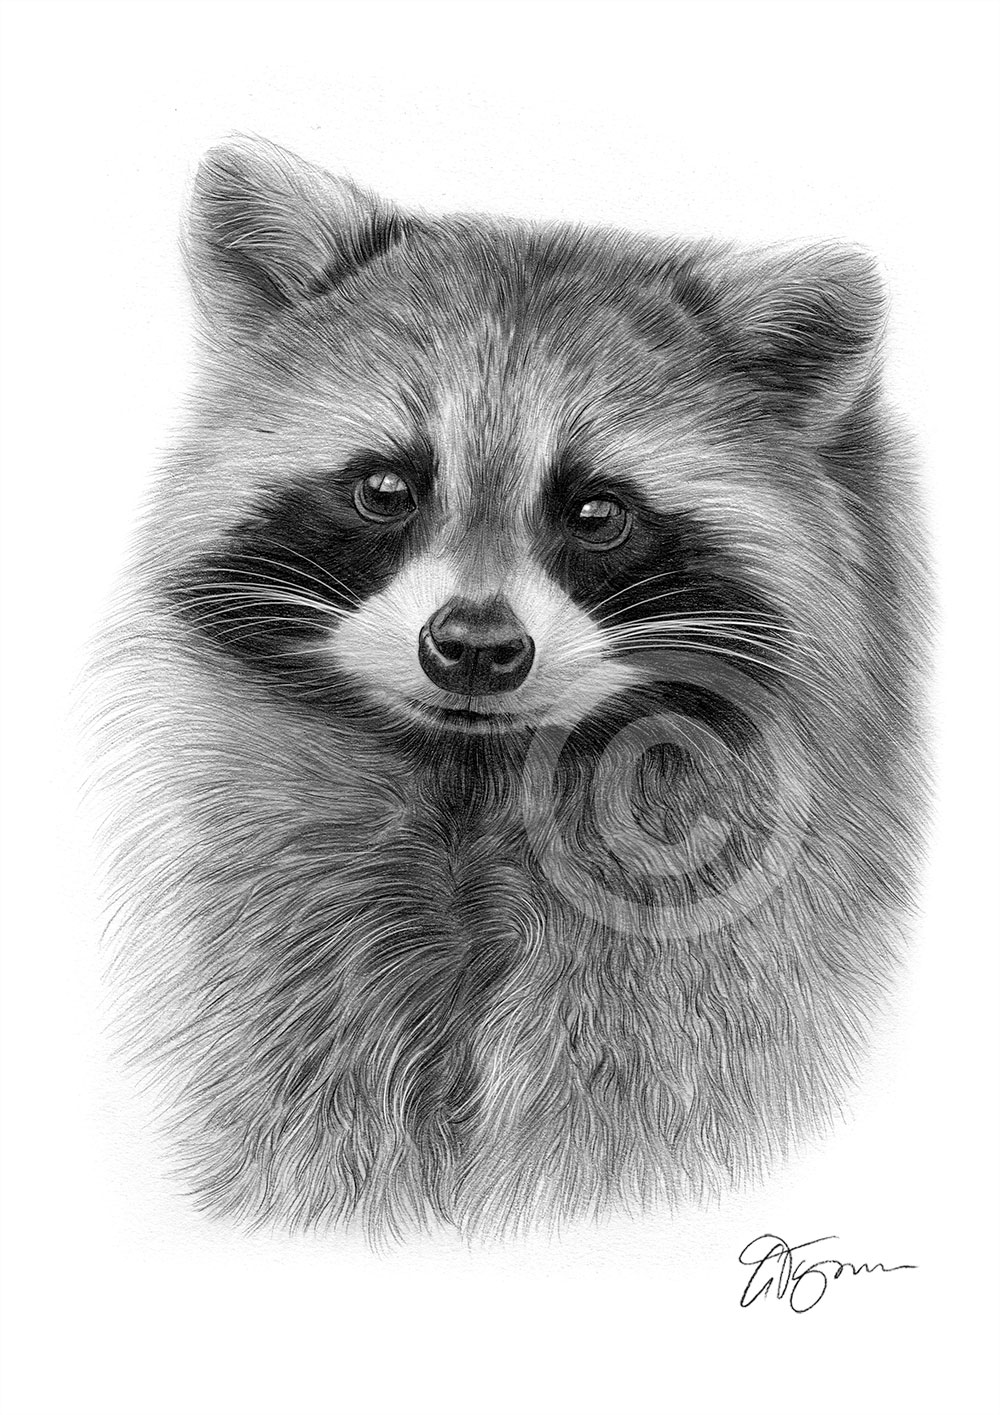 Raccoon drawing